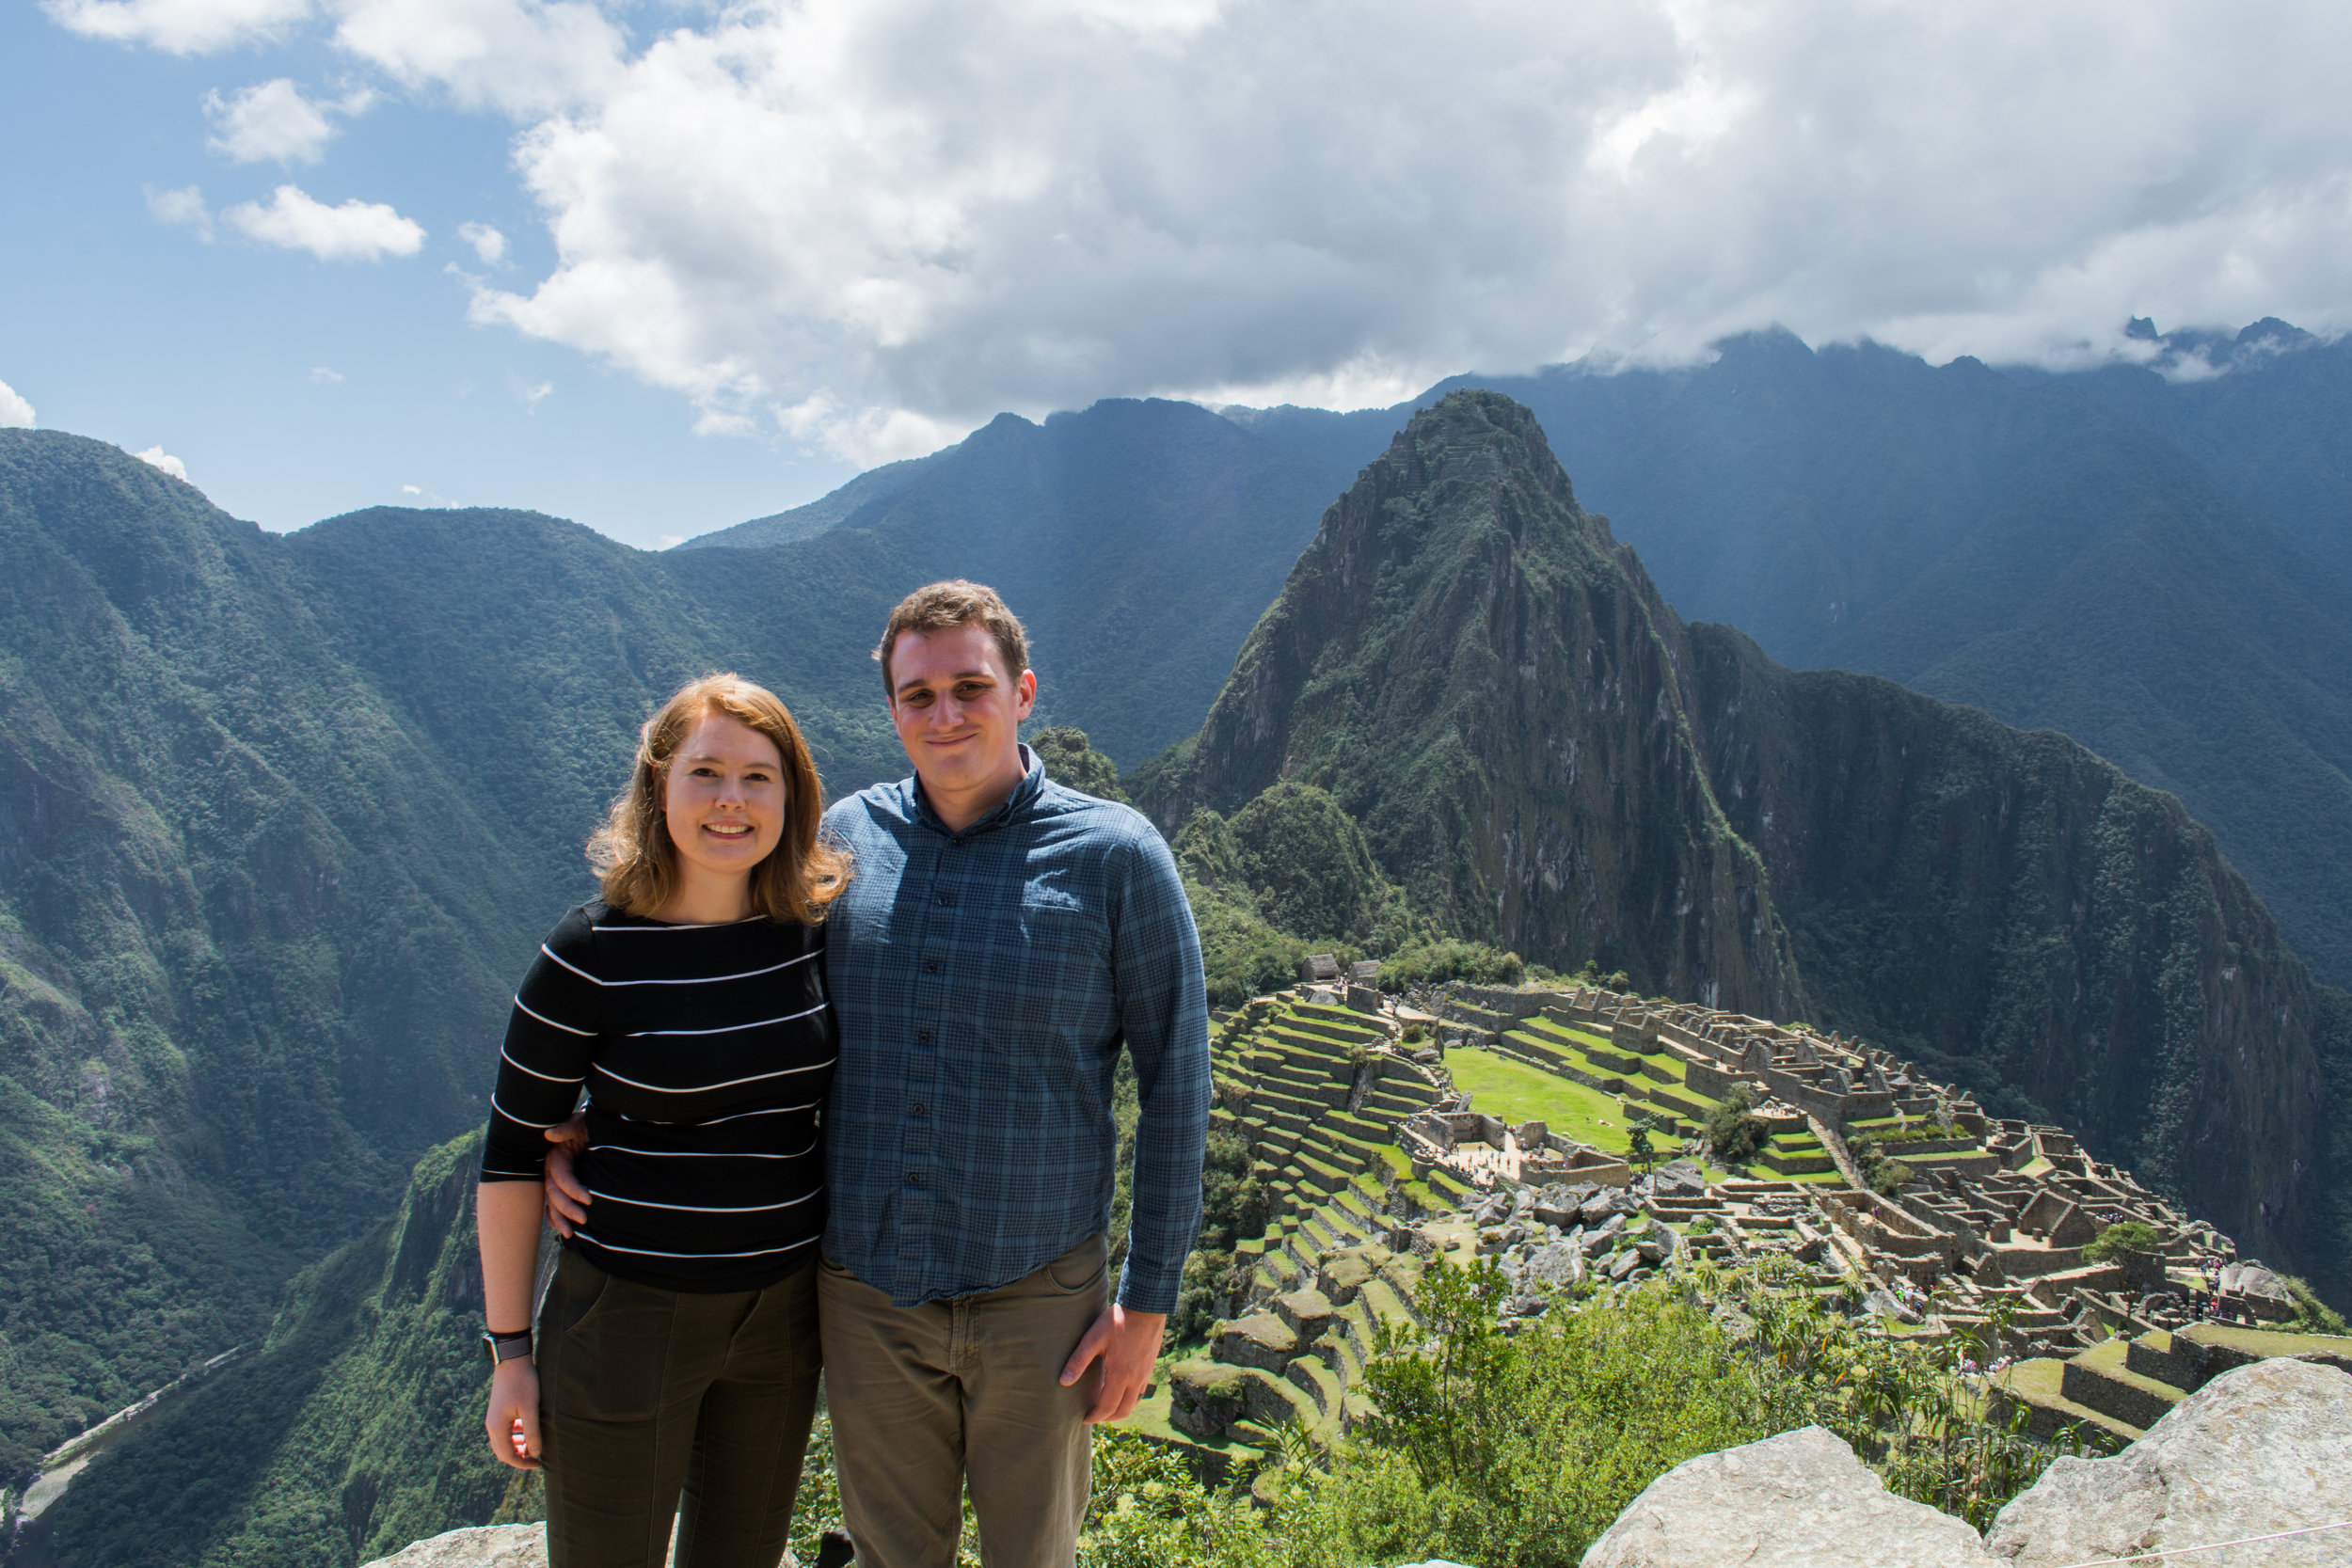 Machu Picchu Day Trip from Ollantaytambo, Peru